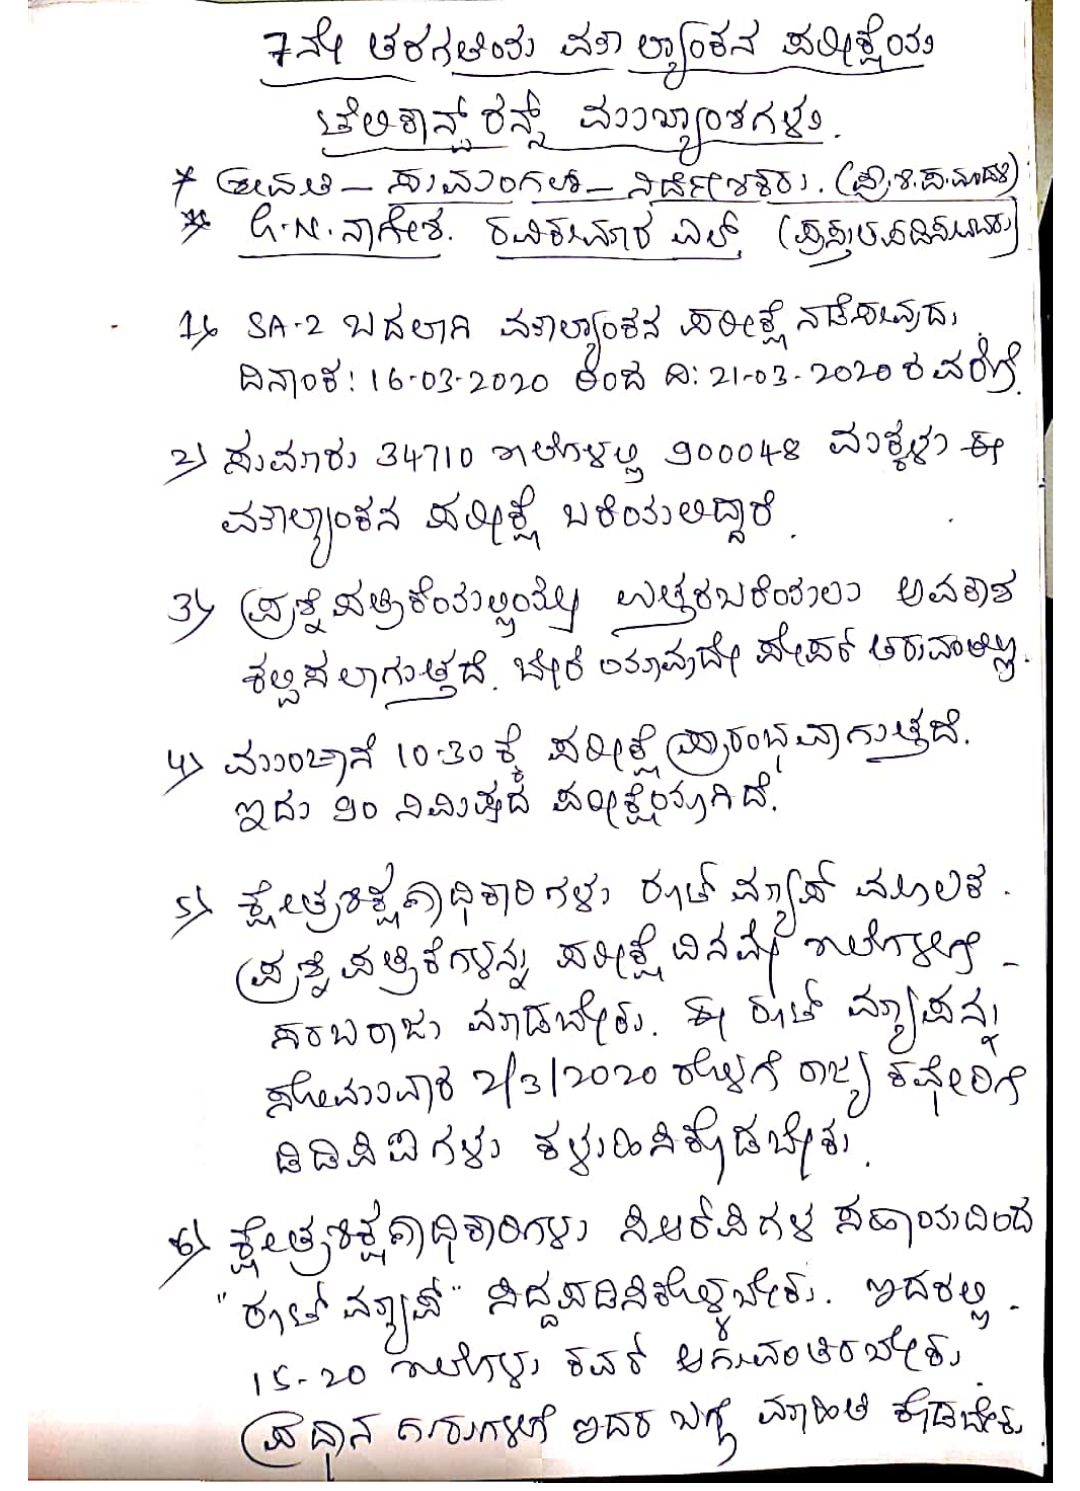 Highlights of Class VII General Valuation Examination held on 28-02-2020